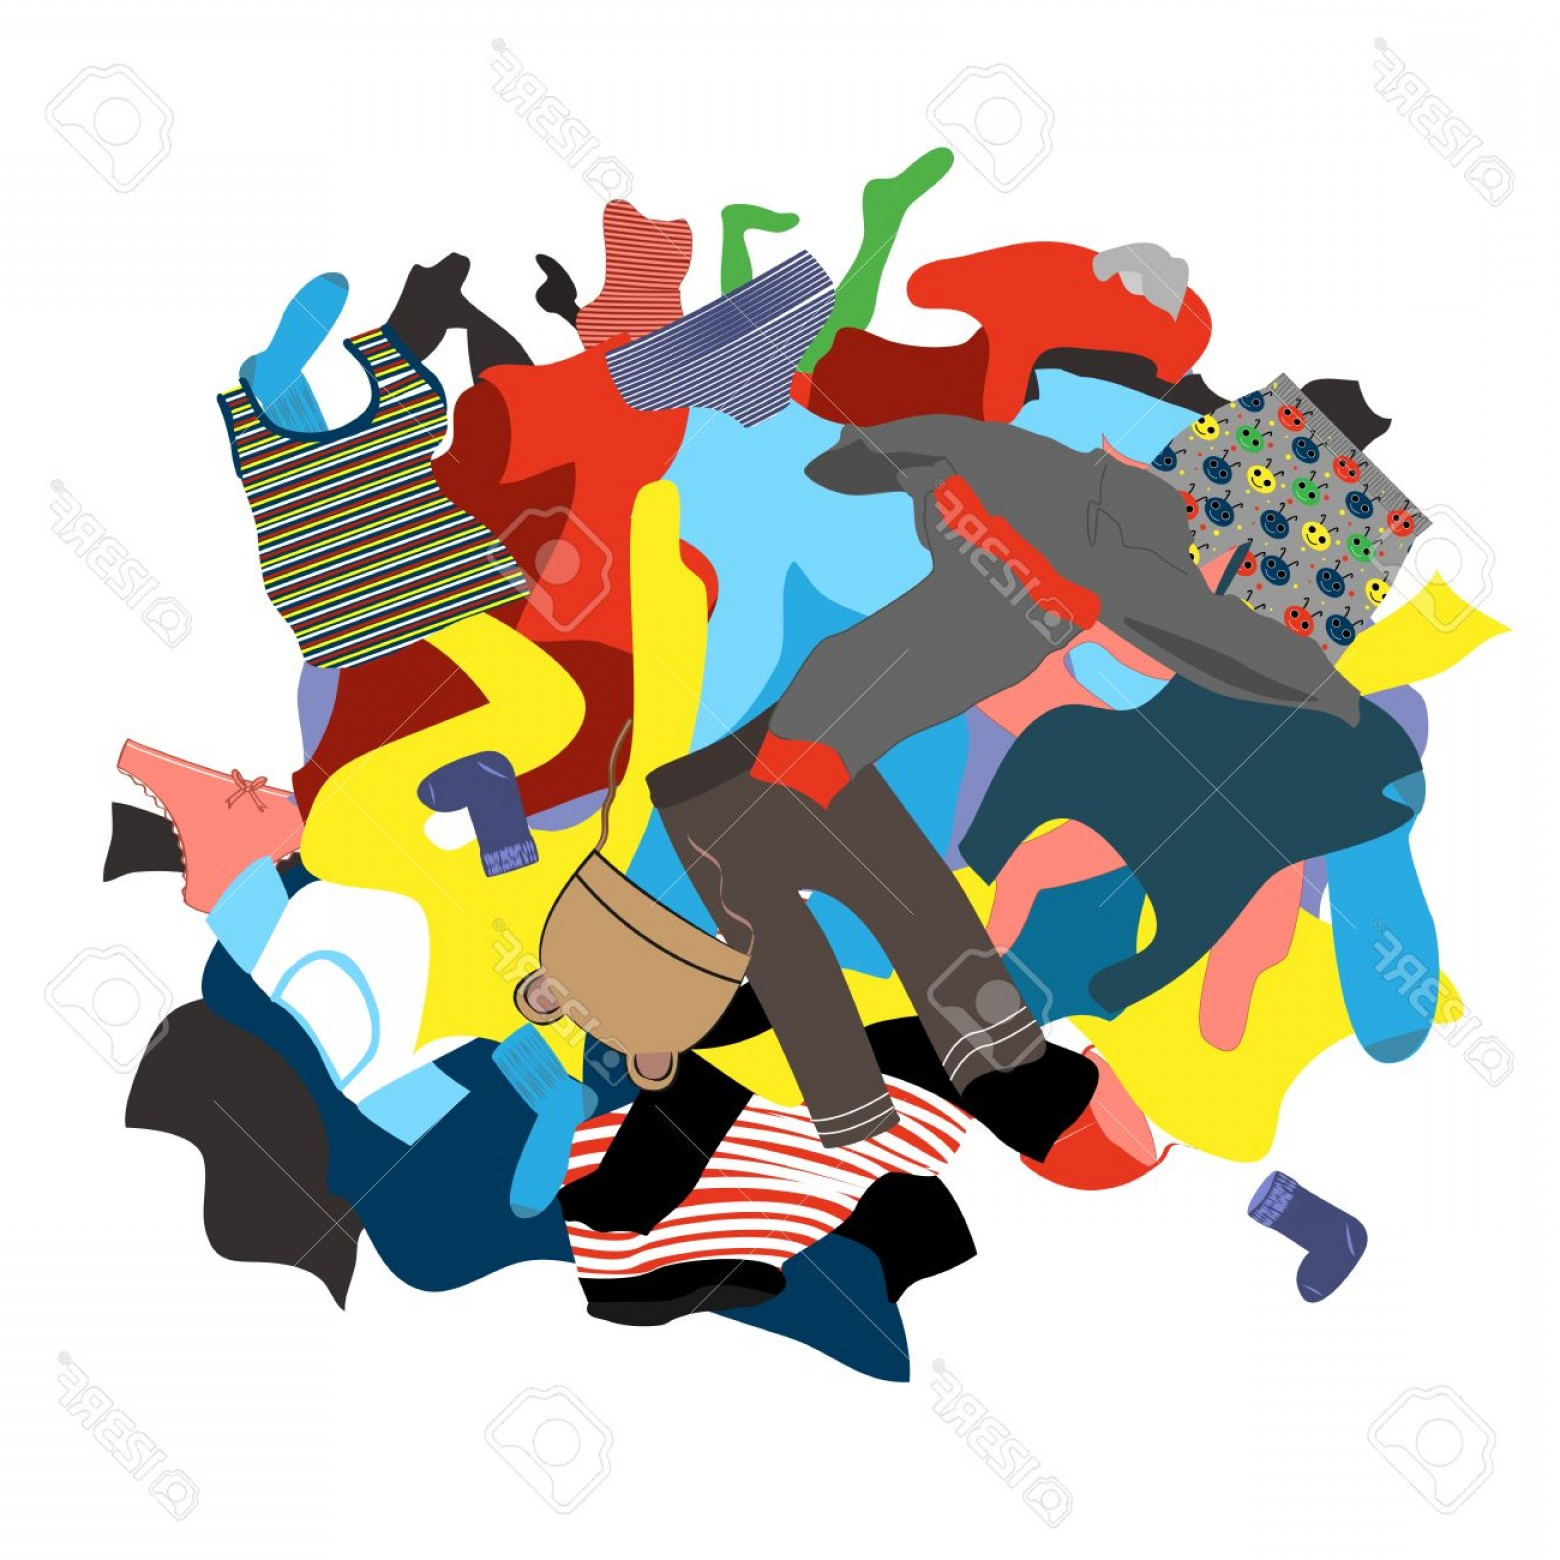 Laundry pile clipart vector library stock Photostock Vector Illustration Featuring A Messy Pile Of Dirty ... vector library stock